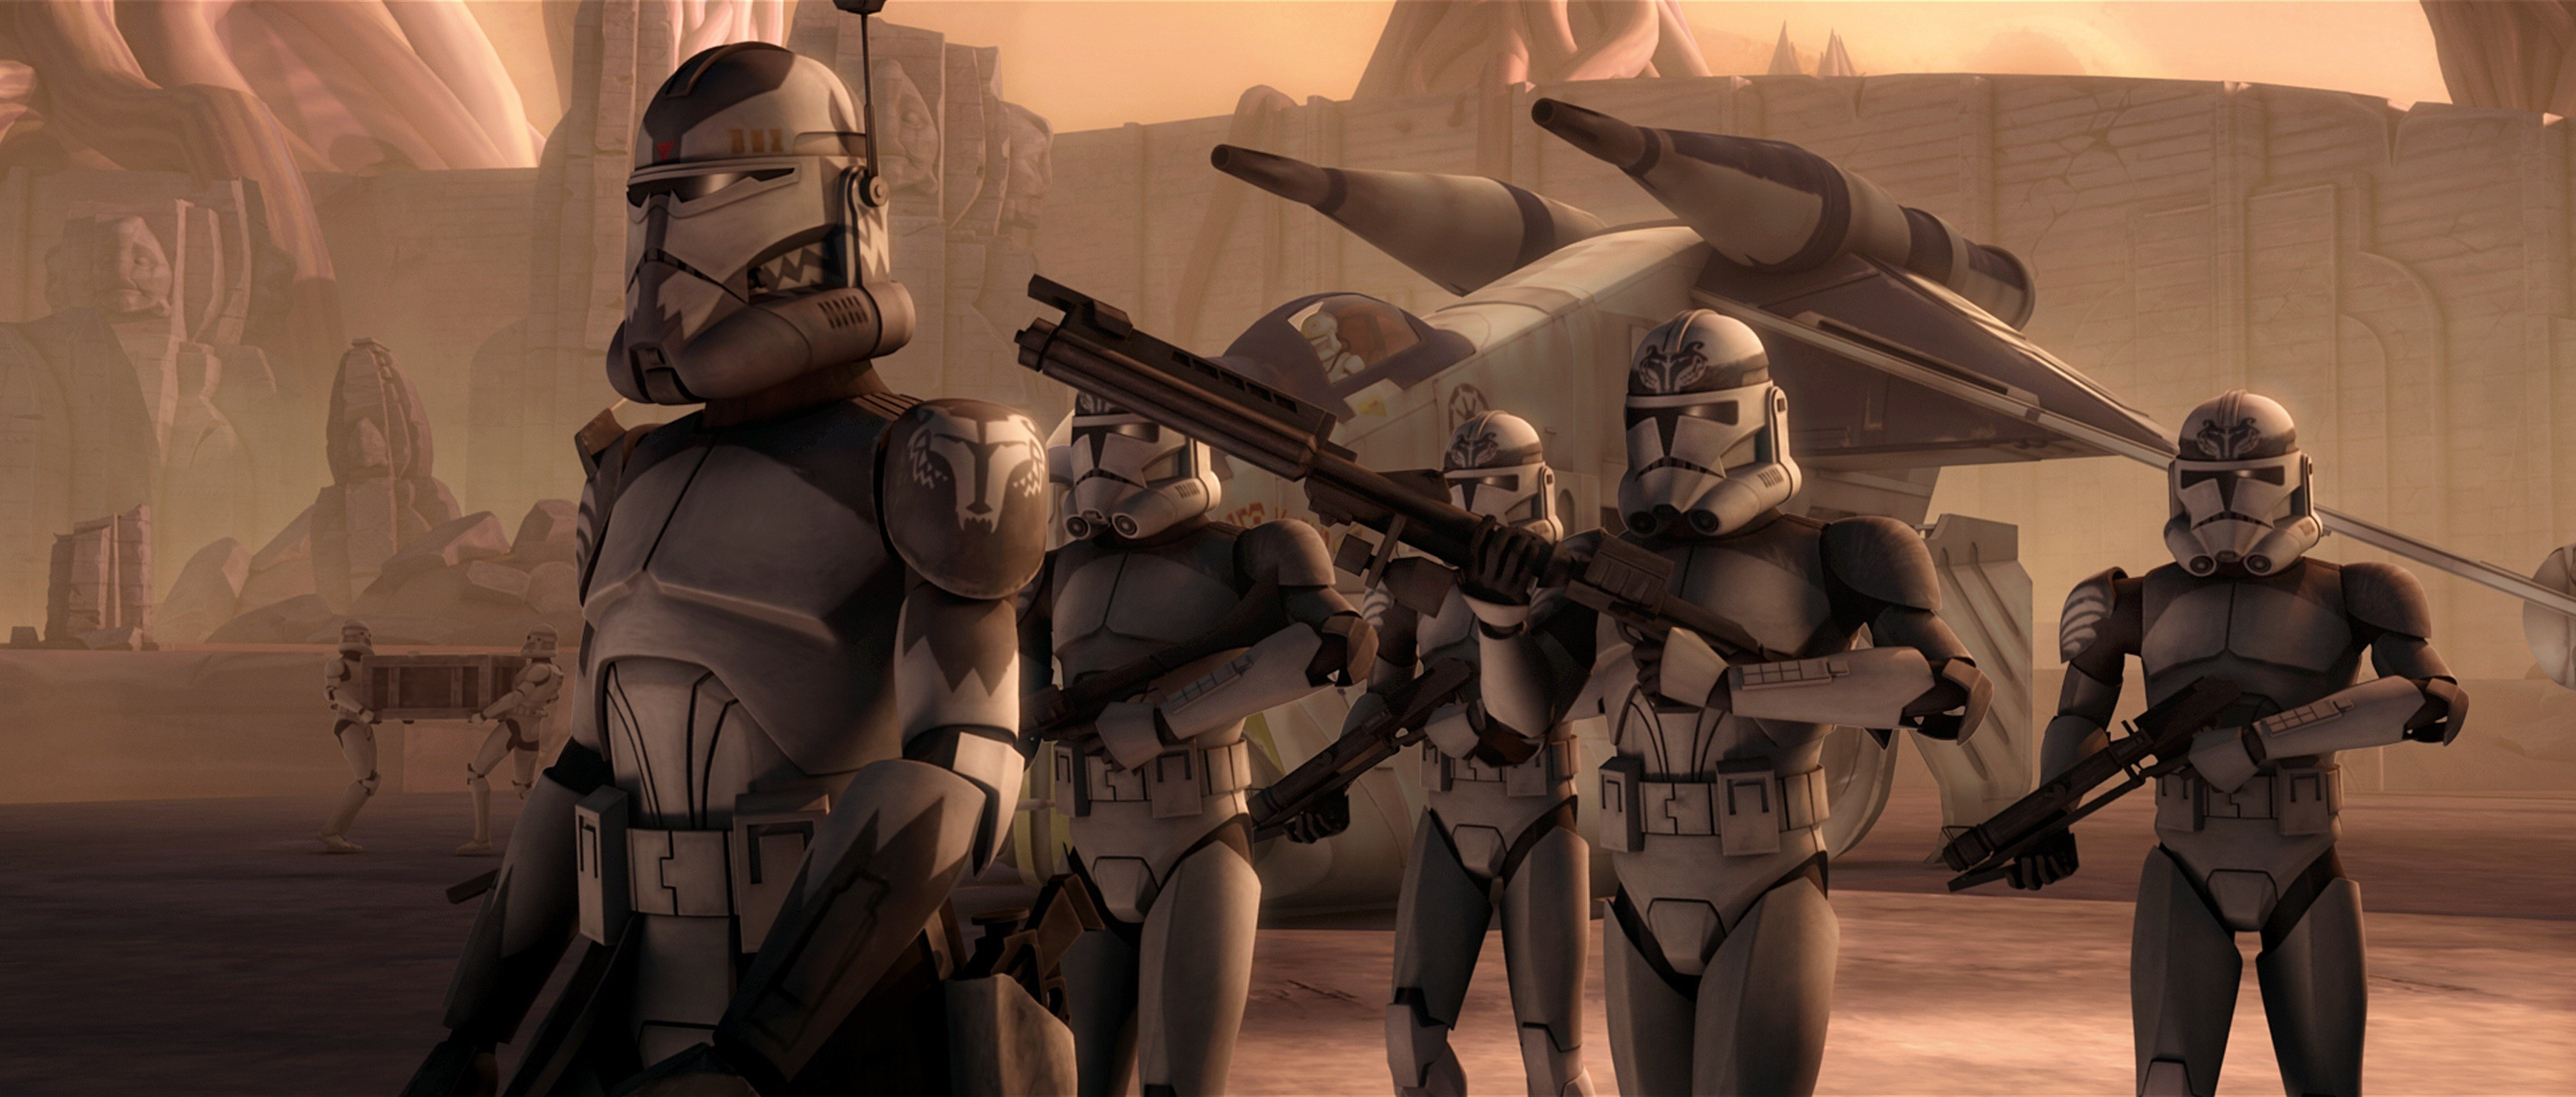 3600x1533 Star Wars, Clone Trooper Wallpapers HD / Desktop and Mobile .